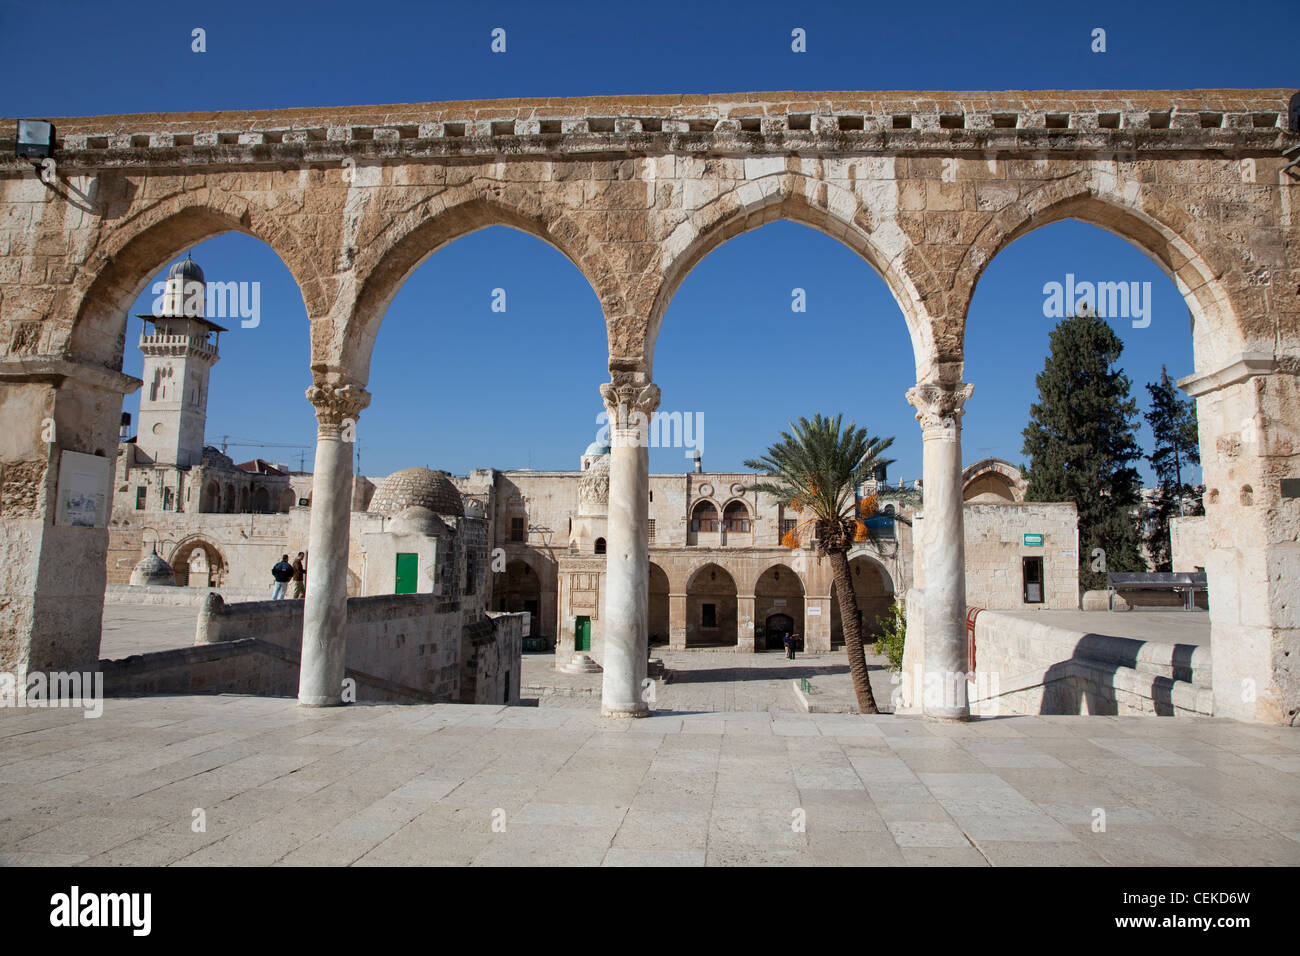 This arcade located west Dome Rock four arches resting on three marble columns Corinthian capitals Old City Jerusalem - Stock Image